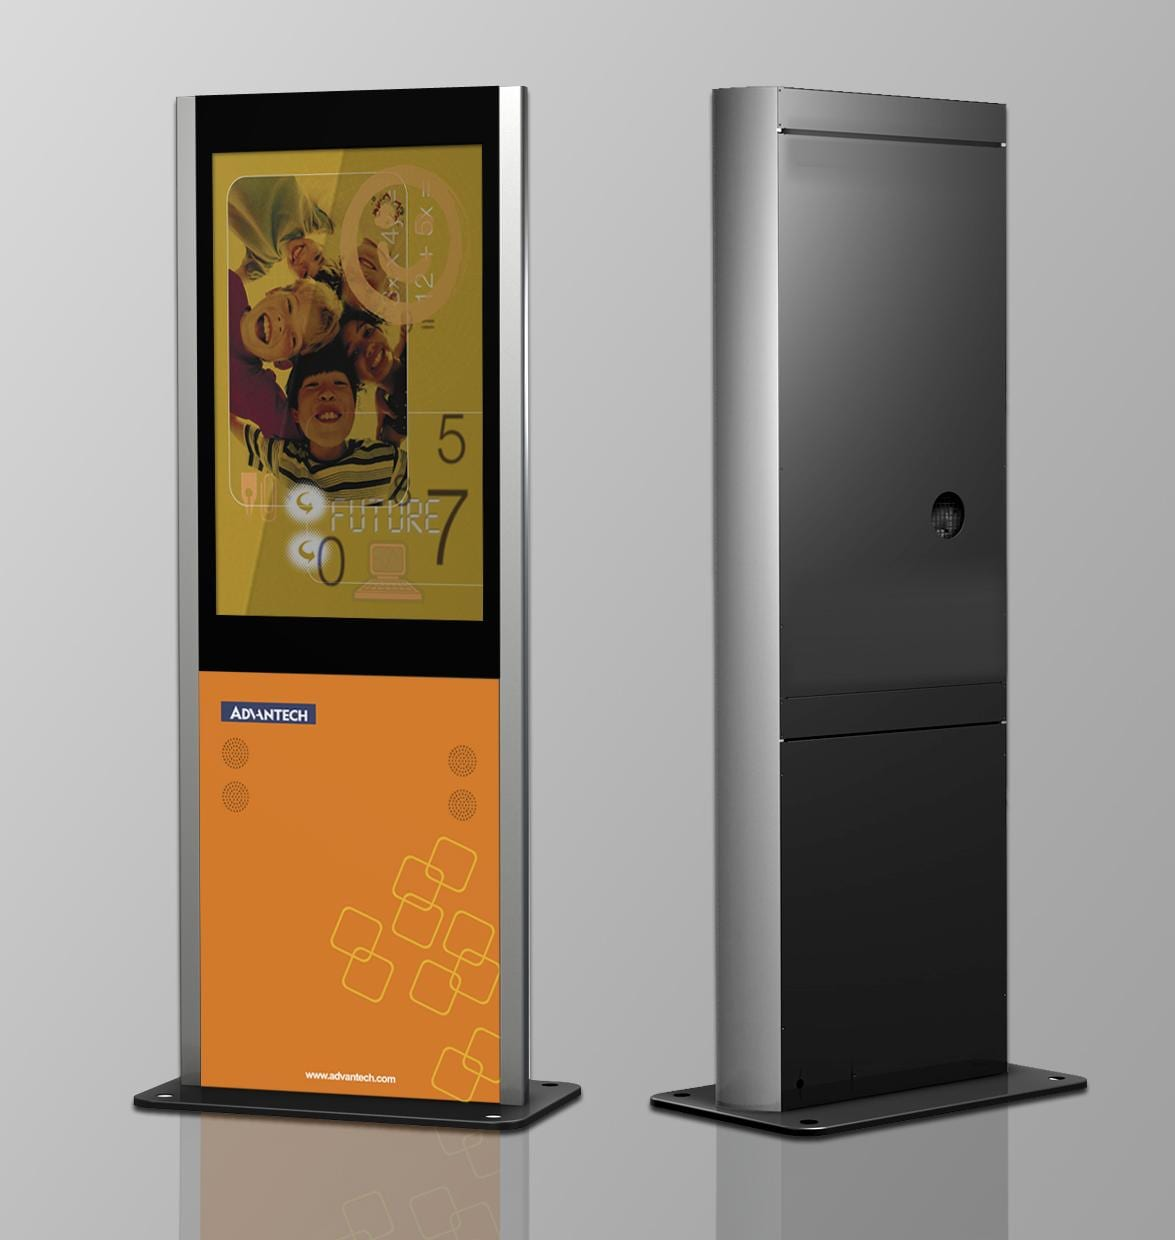 Advantech interactive digital signage station